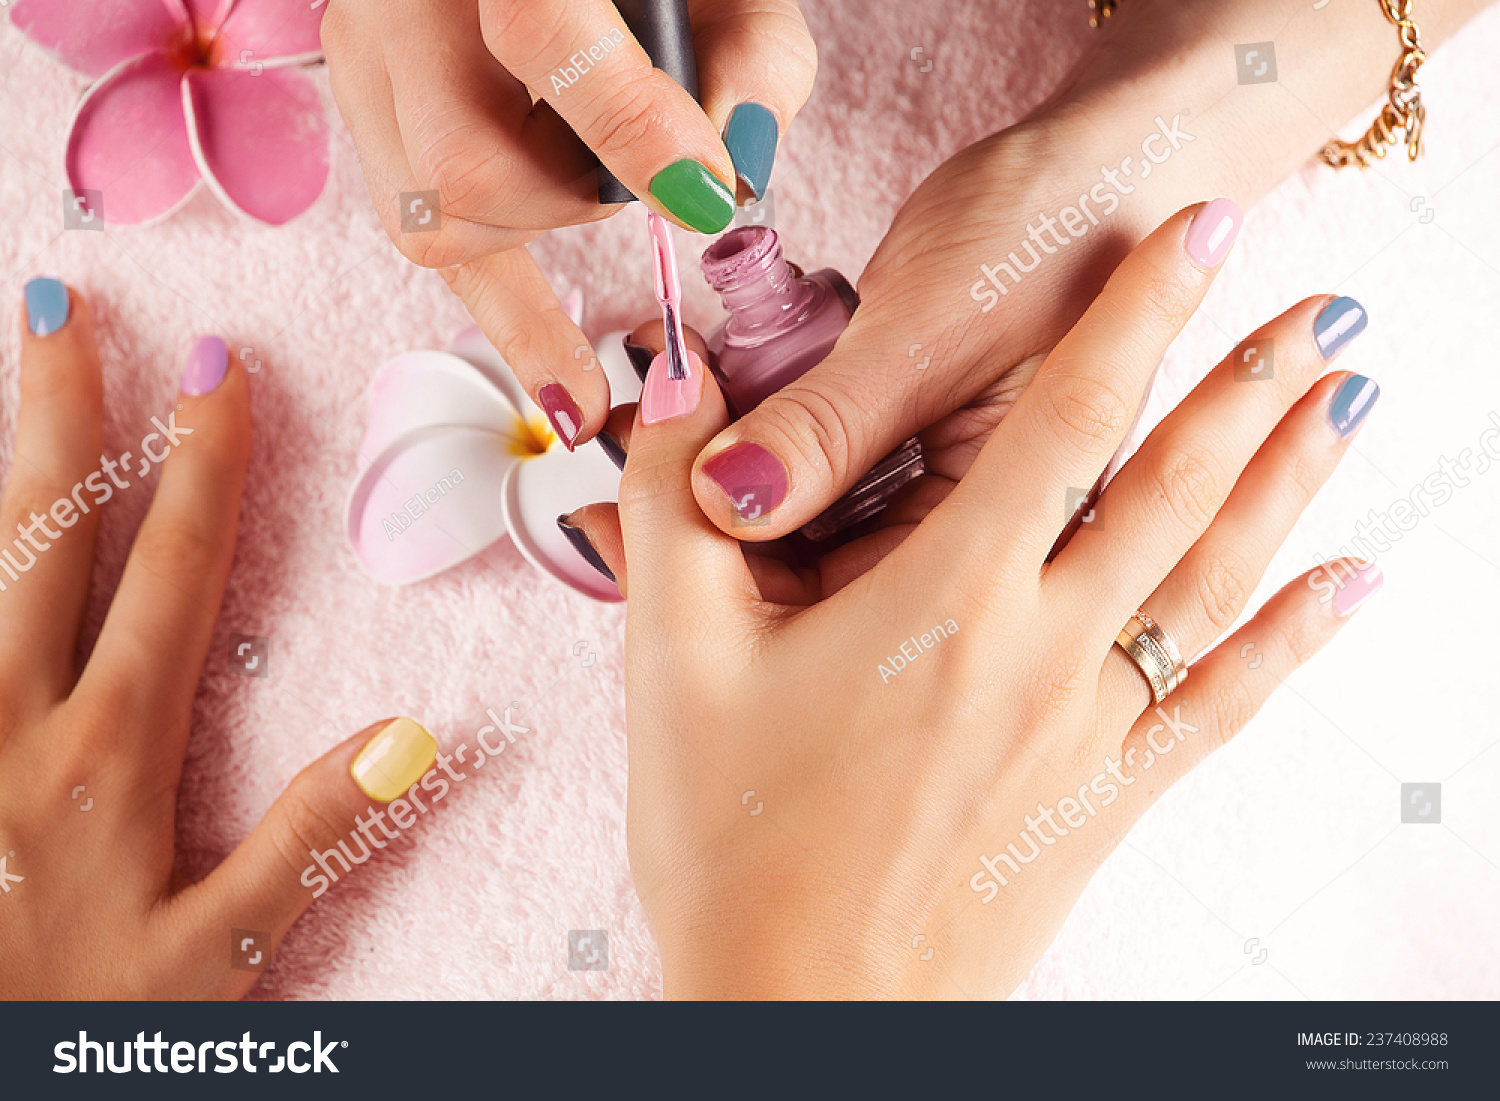 Bright stylish manicure with colored nail manicure for A trial beauty treatment salon